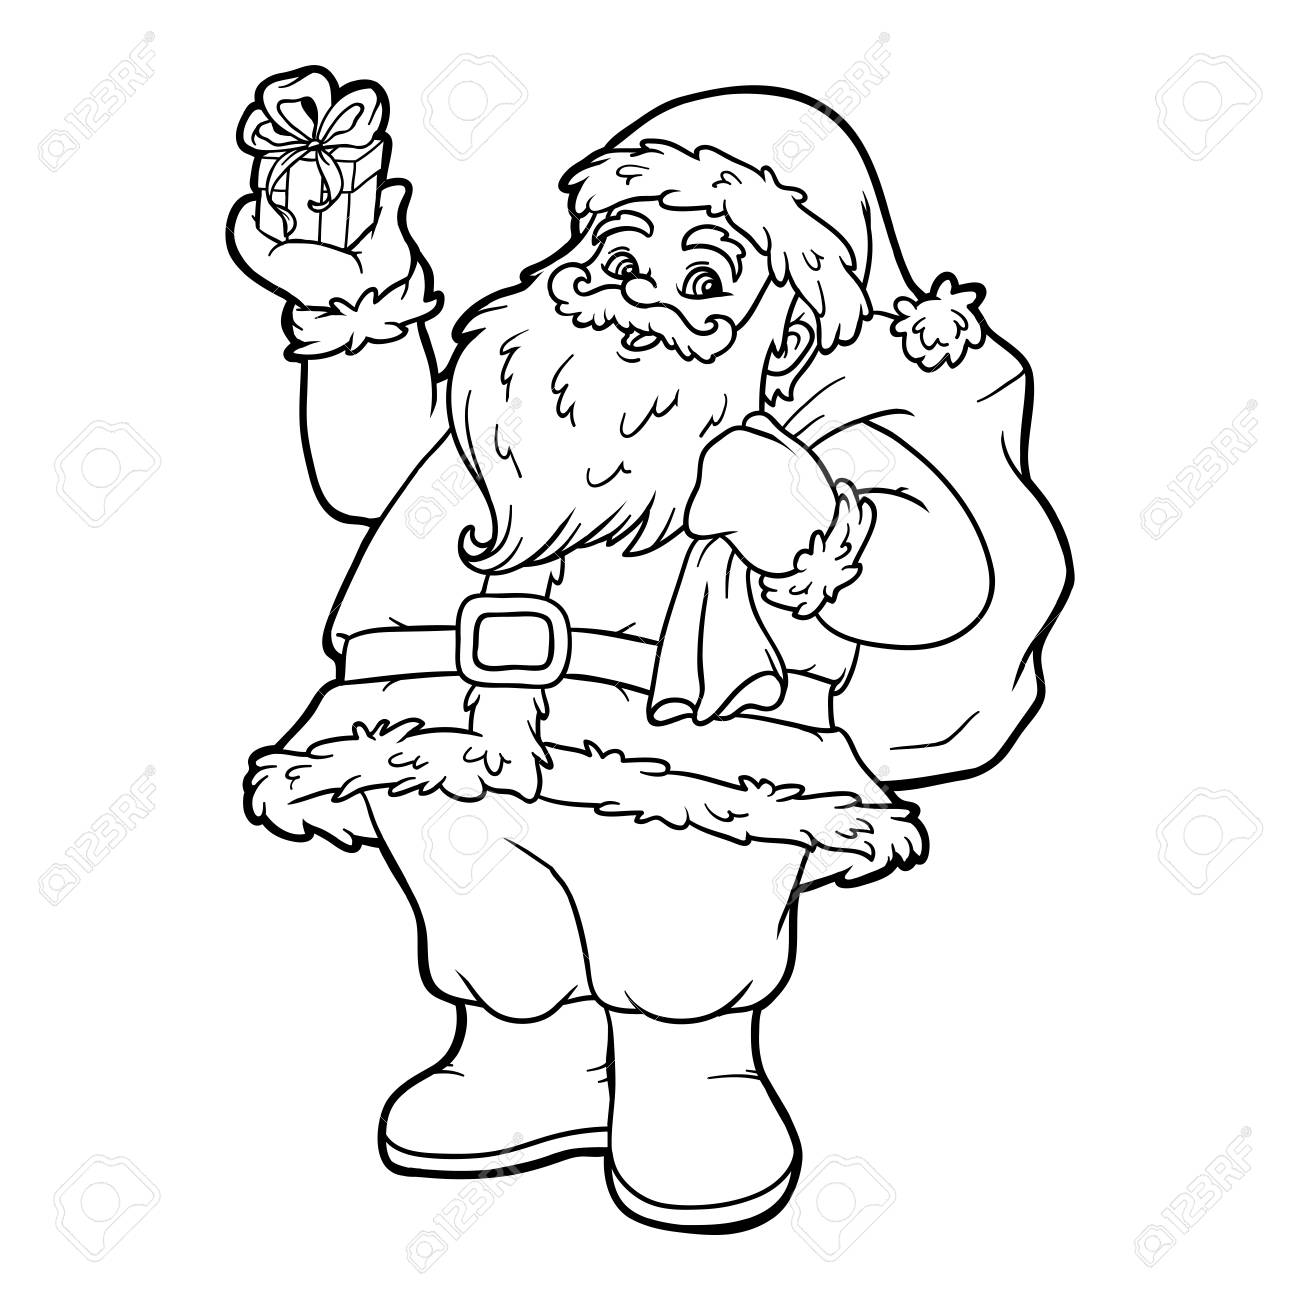 Coloring Book For Children, Santa Claus Royalty Free Cliparts ...